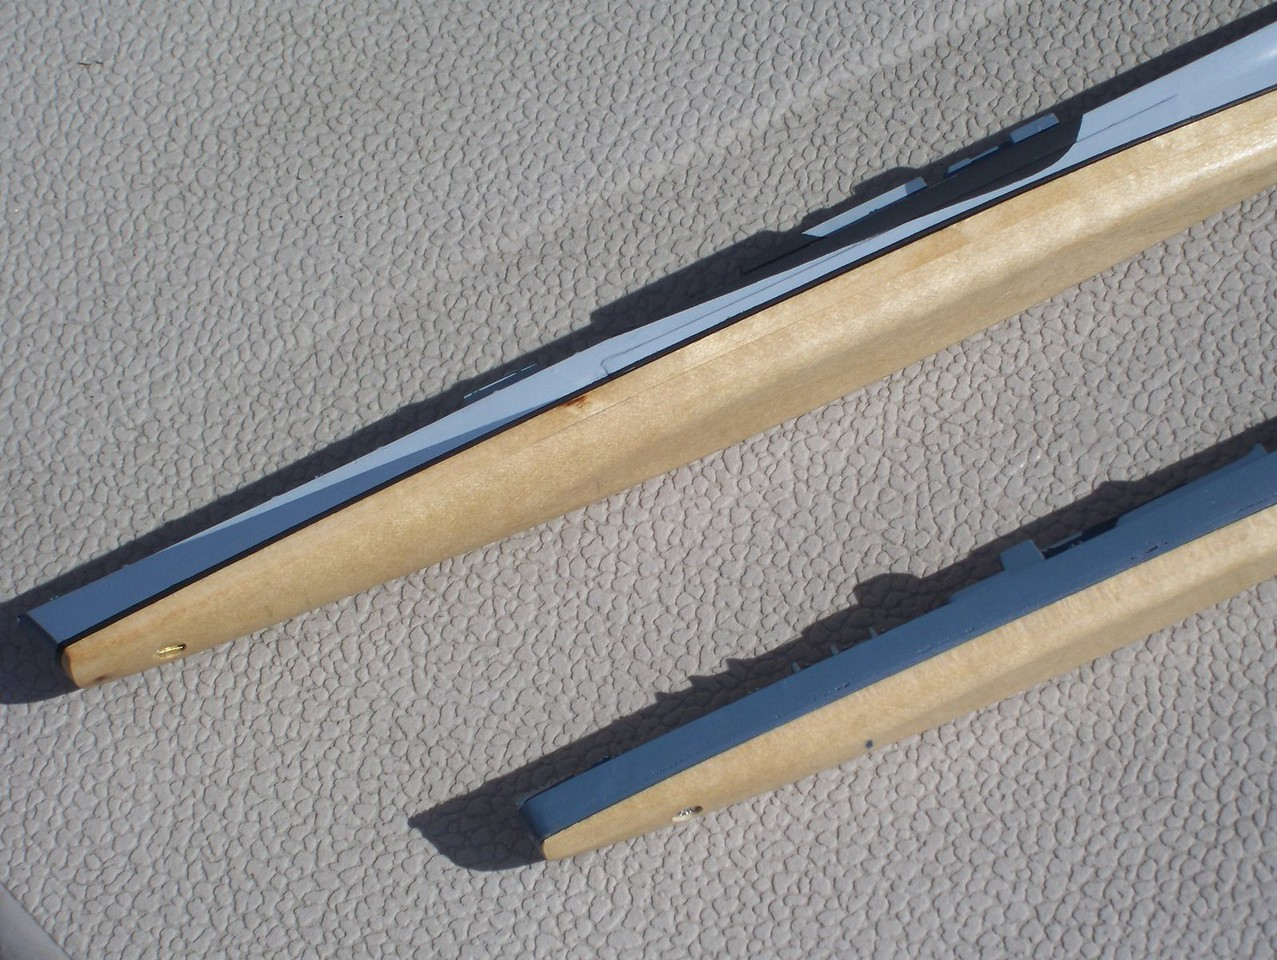 090307 Basswood bottoms for USS San Juan (CL-54) and Skywave Fletcher.  Coated with spray varnish (clear gloss).